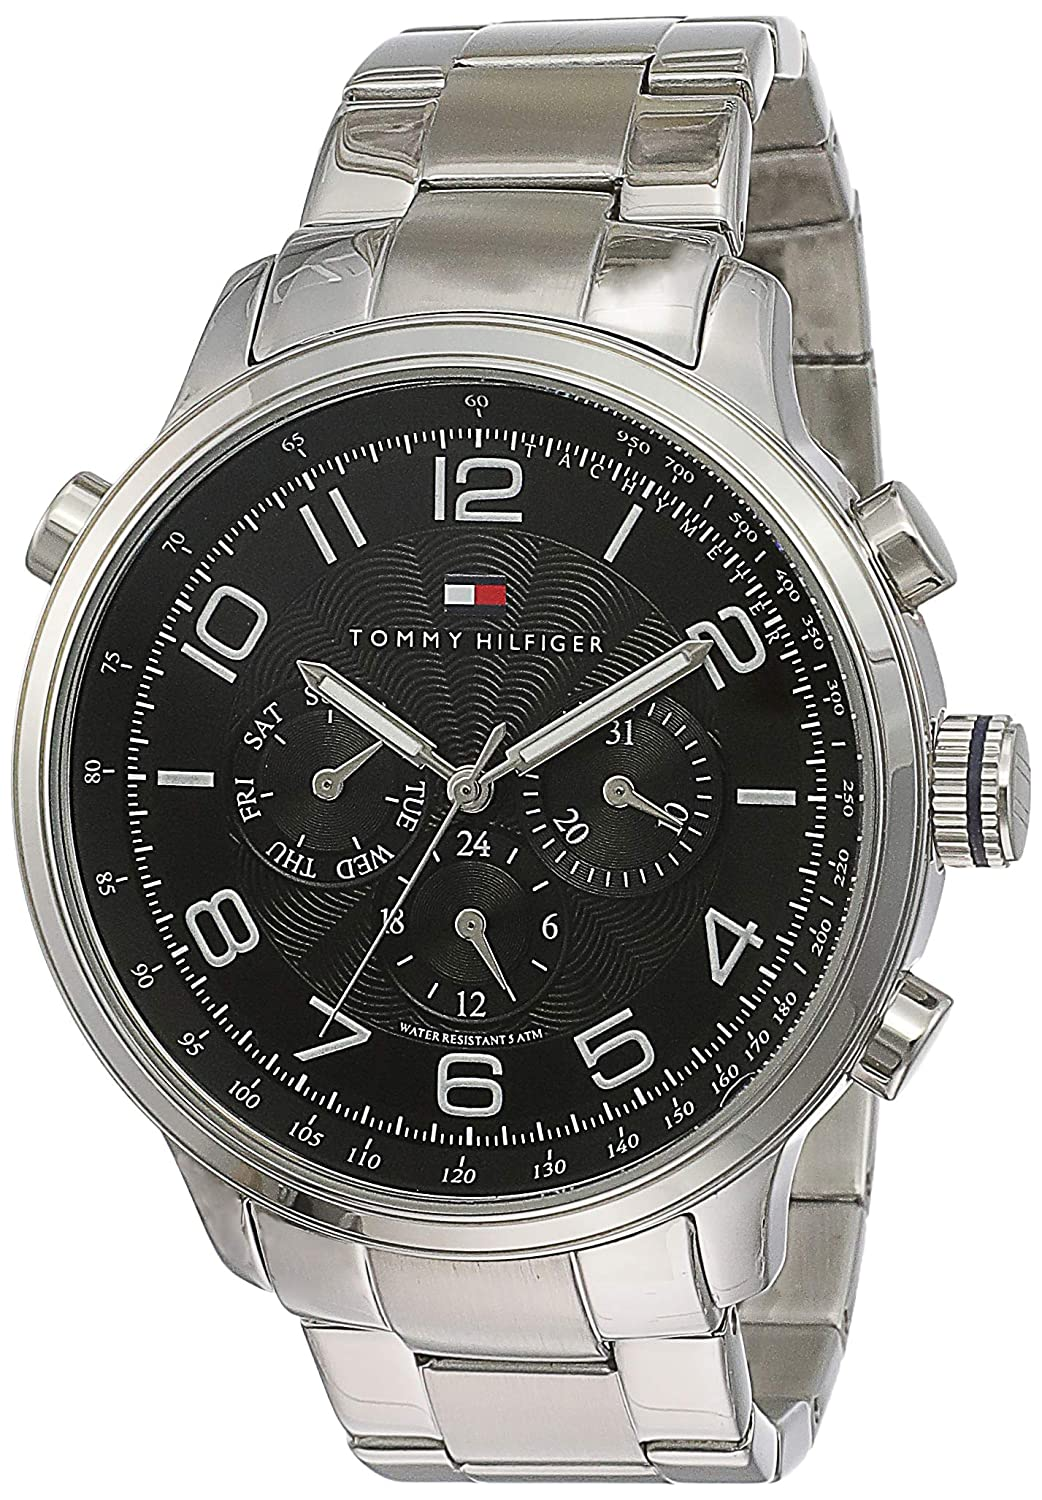 06b826adb Buy Tommy Hilfiger Analog Black Dial Men's Watch - NATH1790965 Online at  Low Prices in India - Amazon.in